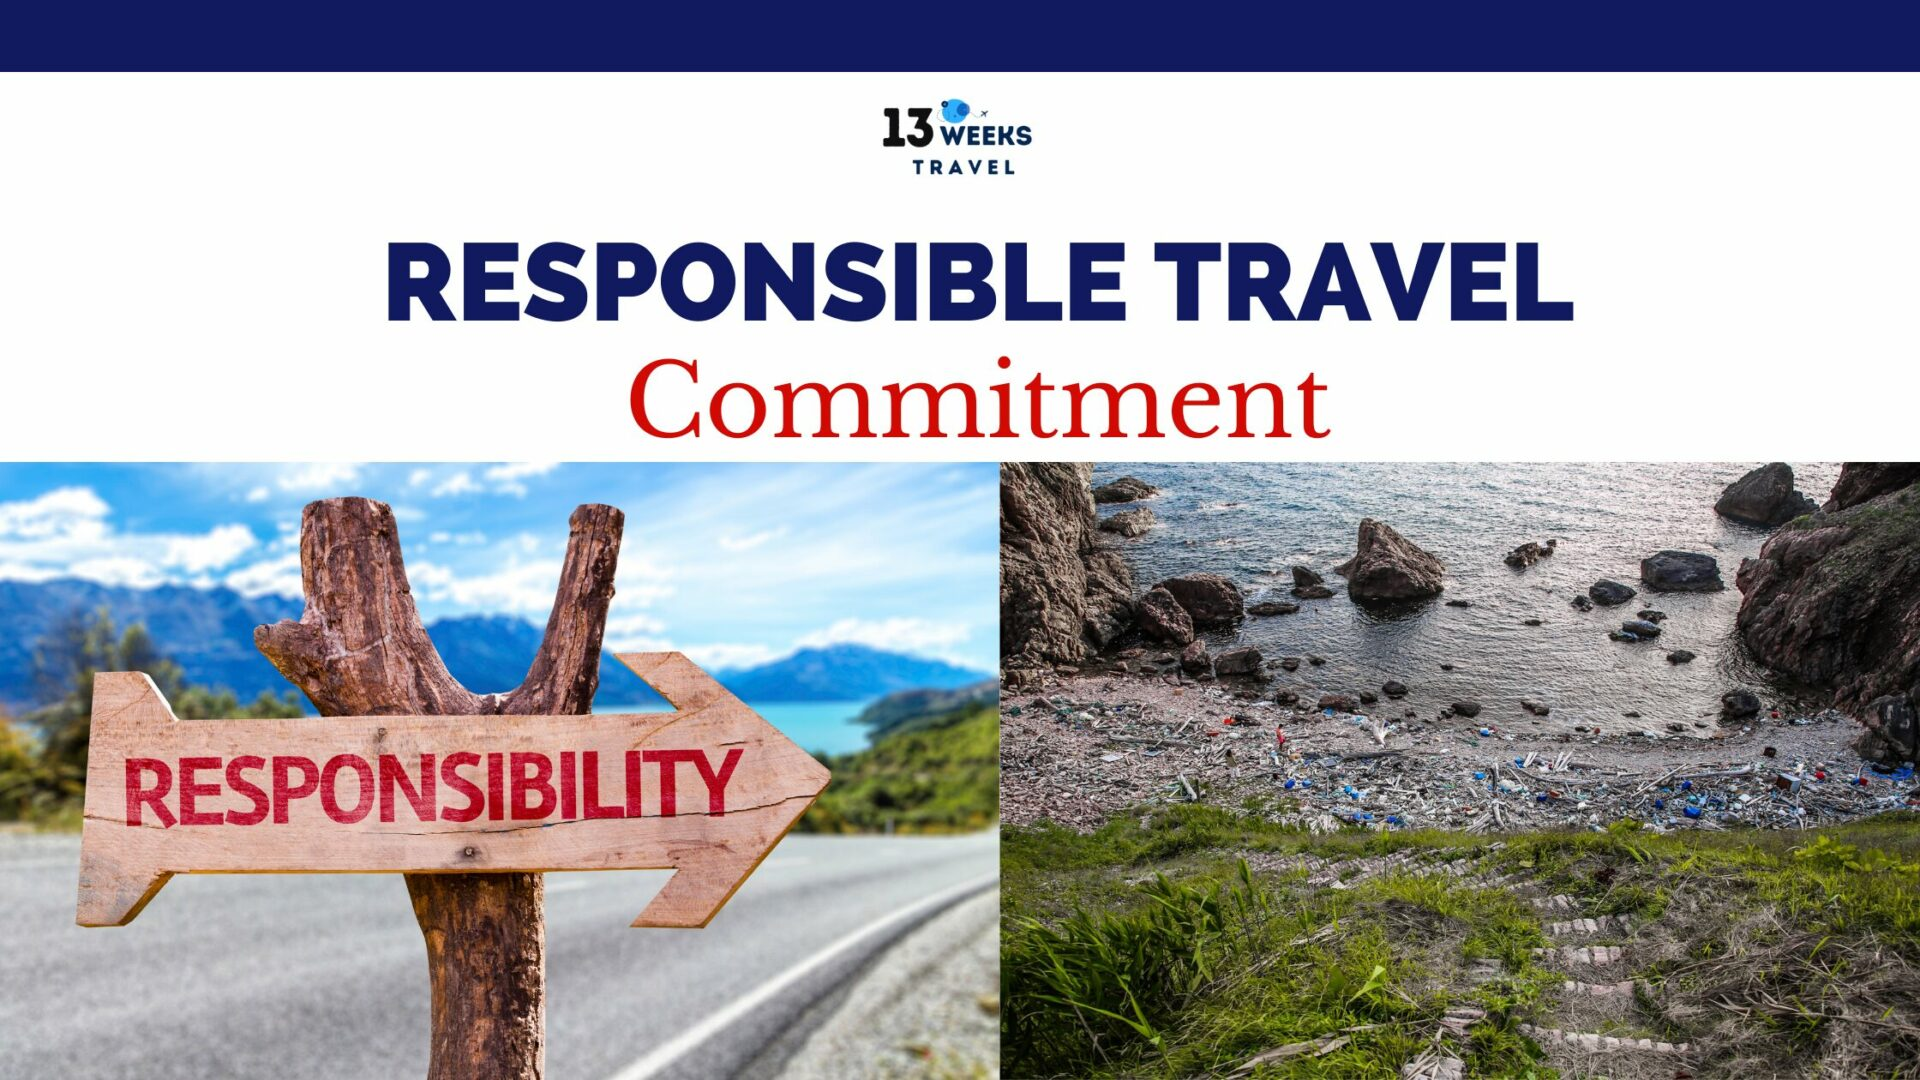 Responsible Travel commitment | 13 Weeks Travel